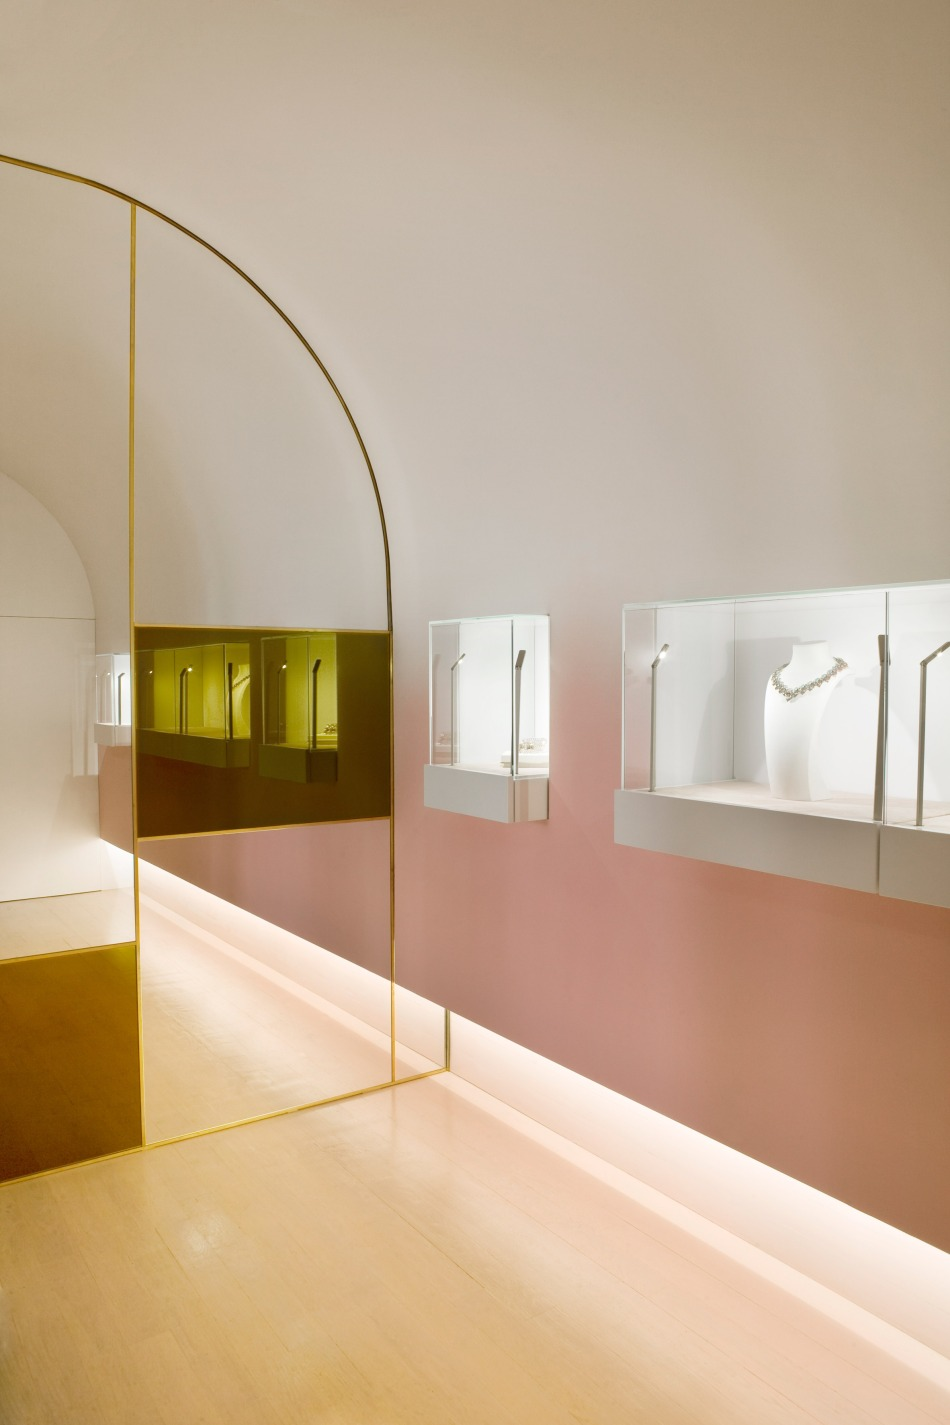 nuun-jewellery-shop-java-architectes-interiors-retail-paris-france_dezeen_2364_col_6